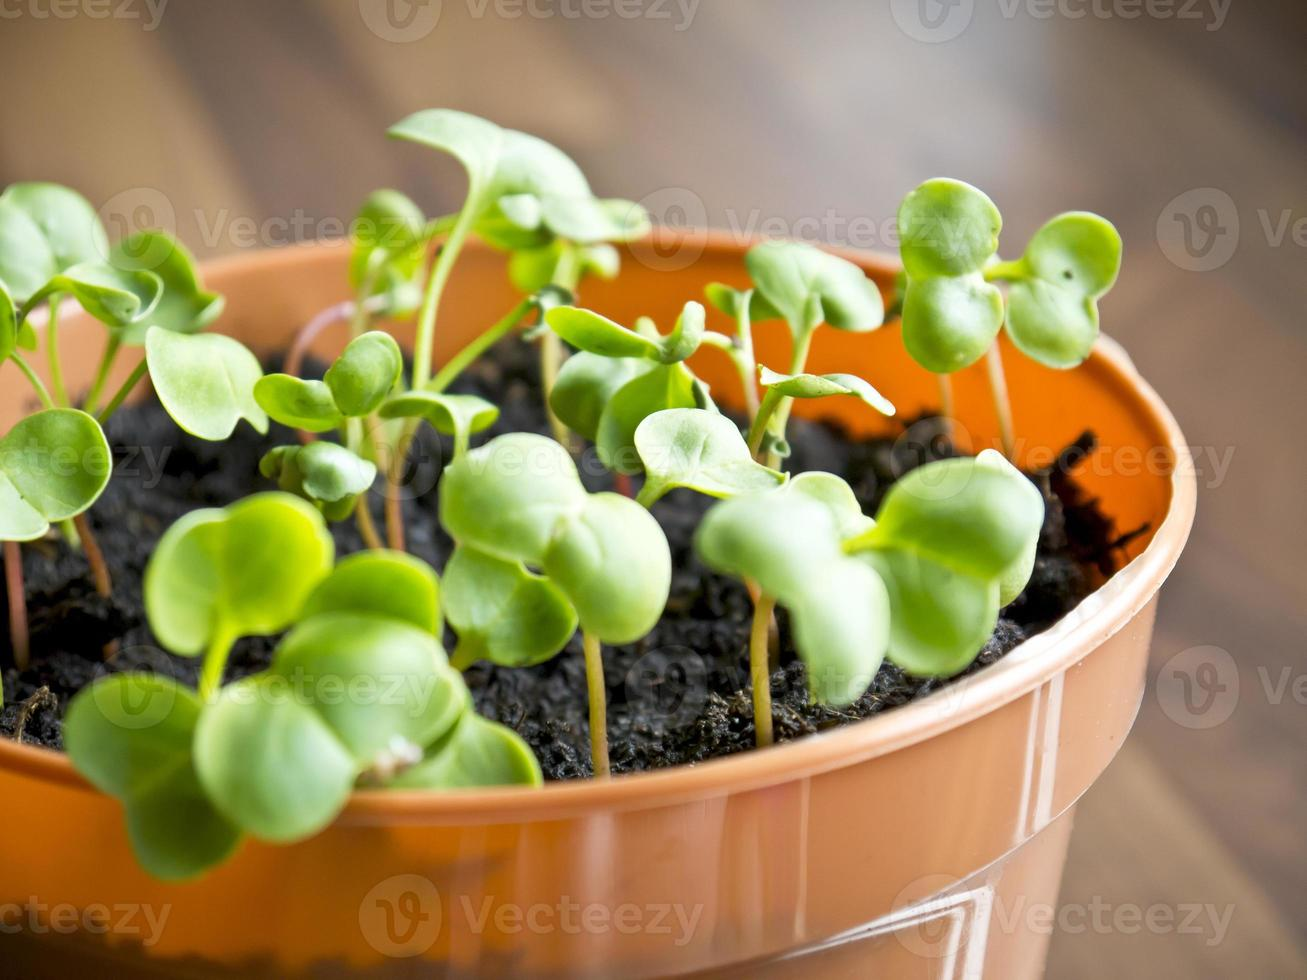 Sprout photo